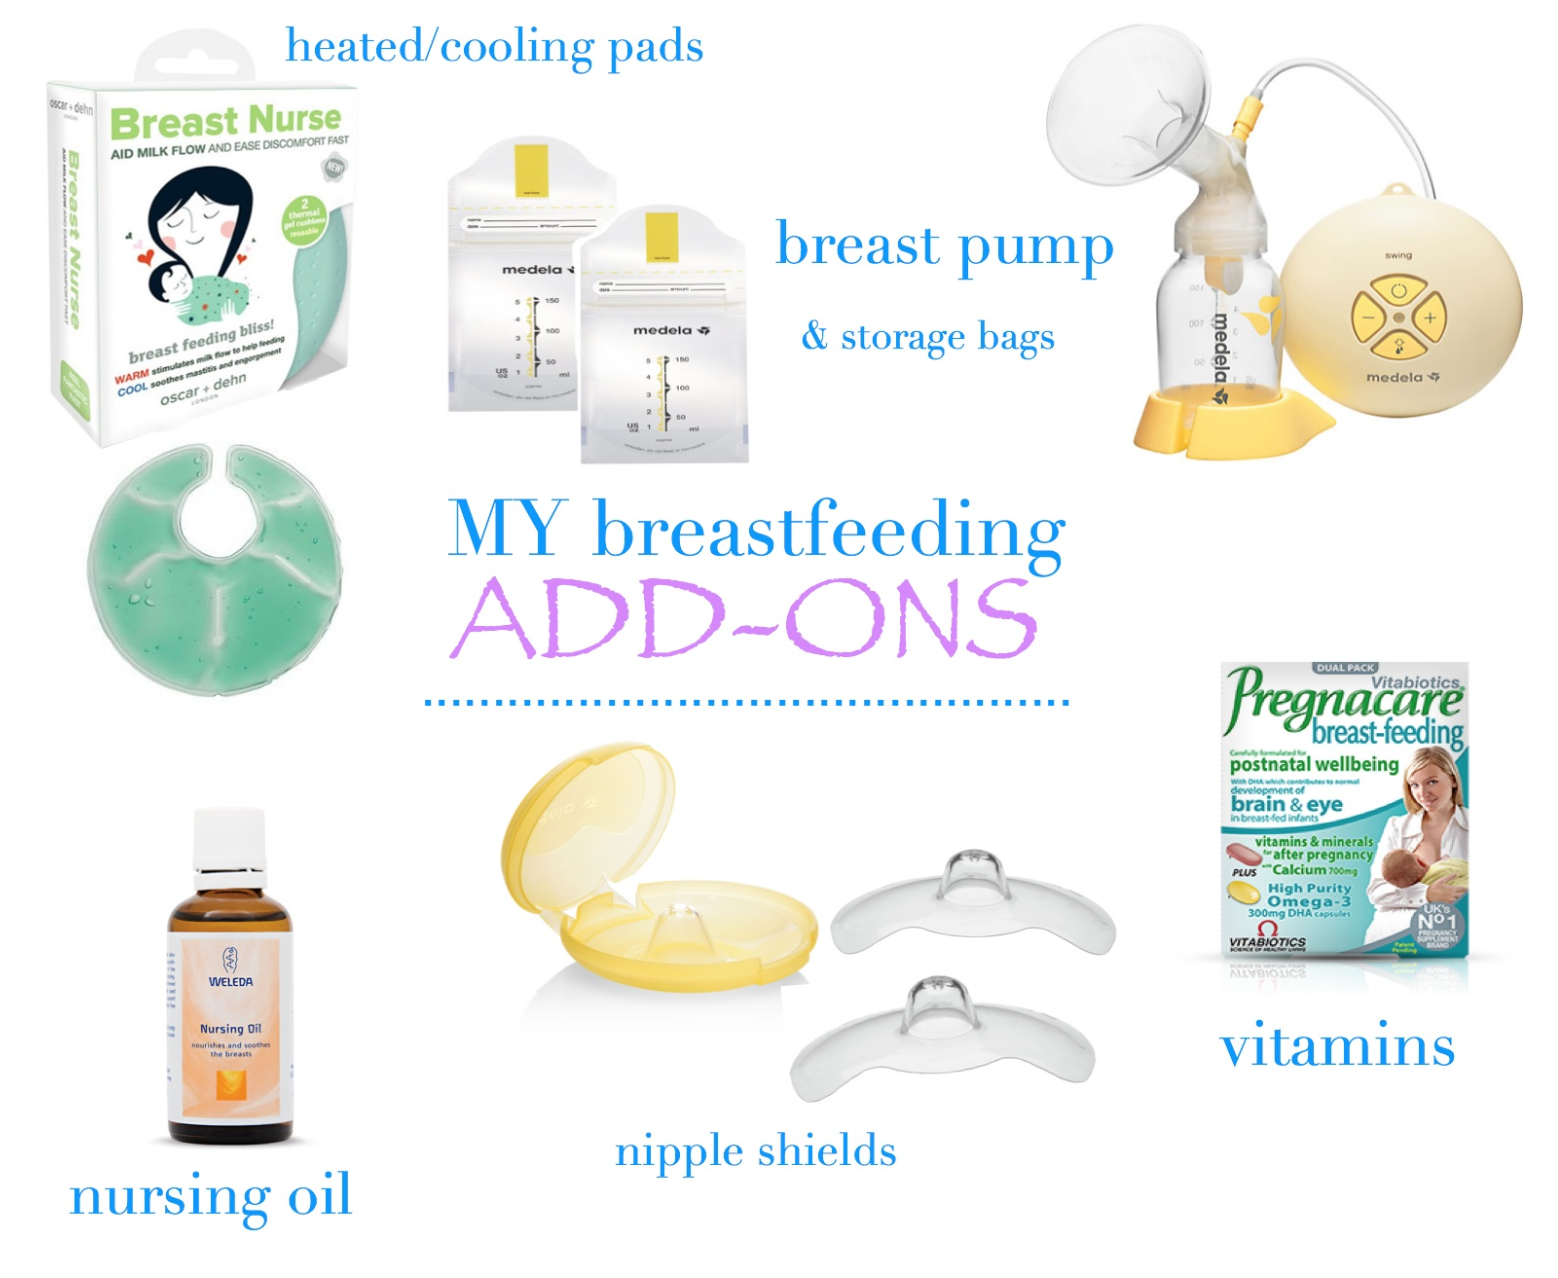 My Breast Feeding Essentials and some extras you may find useful! | breast feeding | breast pumps | medela | nipple cream | nursing cover | nursing oil | breast milk | breast nipple shields | pregnancy vitamins | nursing cushion | widgey cushions | blocked ducts | mamasVIB | lansinoh nipple cream | lansinoh pads | lansinoh | medela storage bangs | milk | breast milk | giselle | giselle breast feeding | model | supermodel | mama VIB